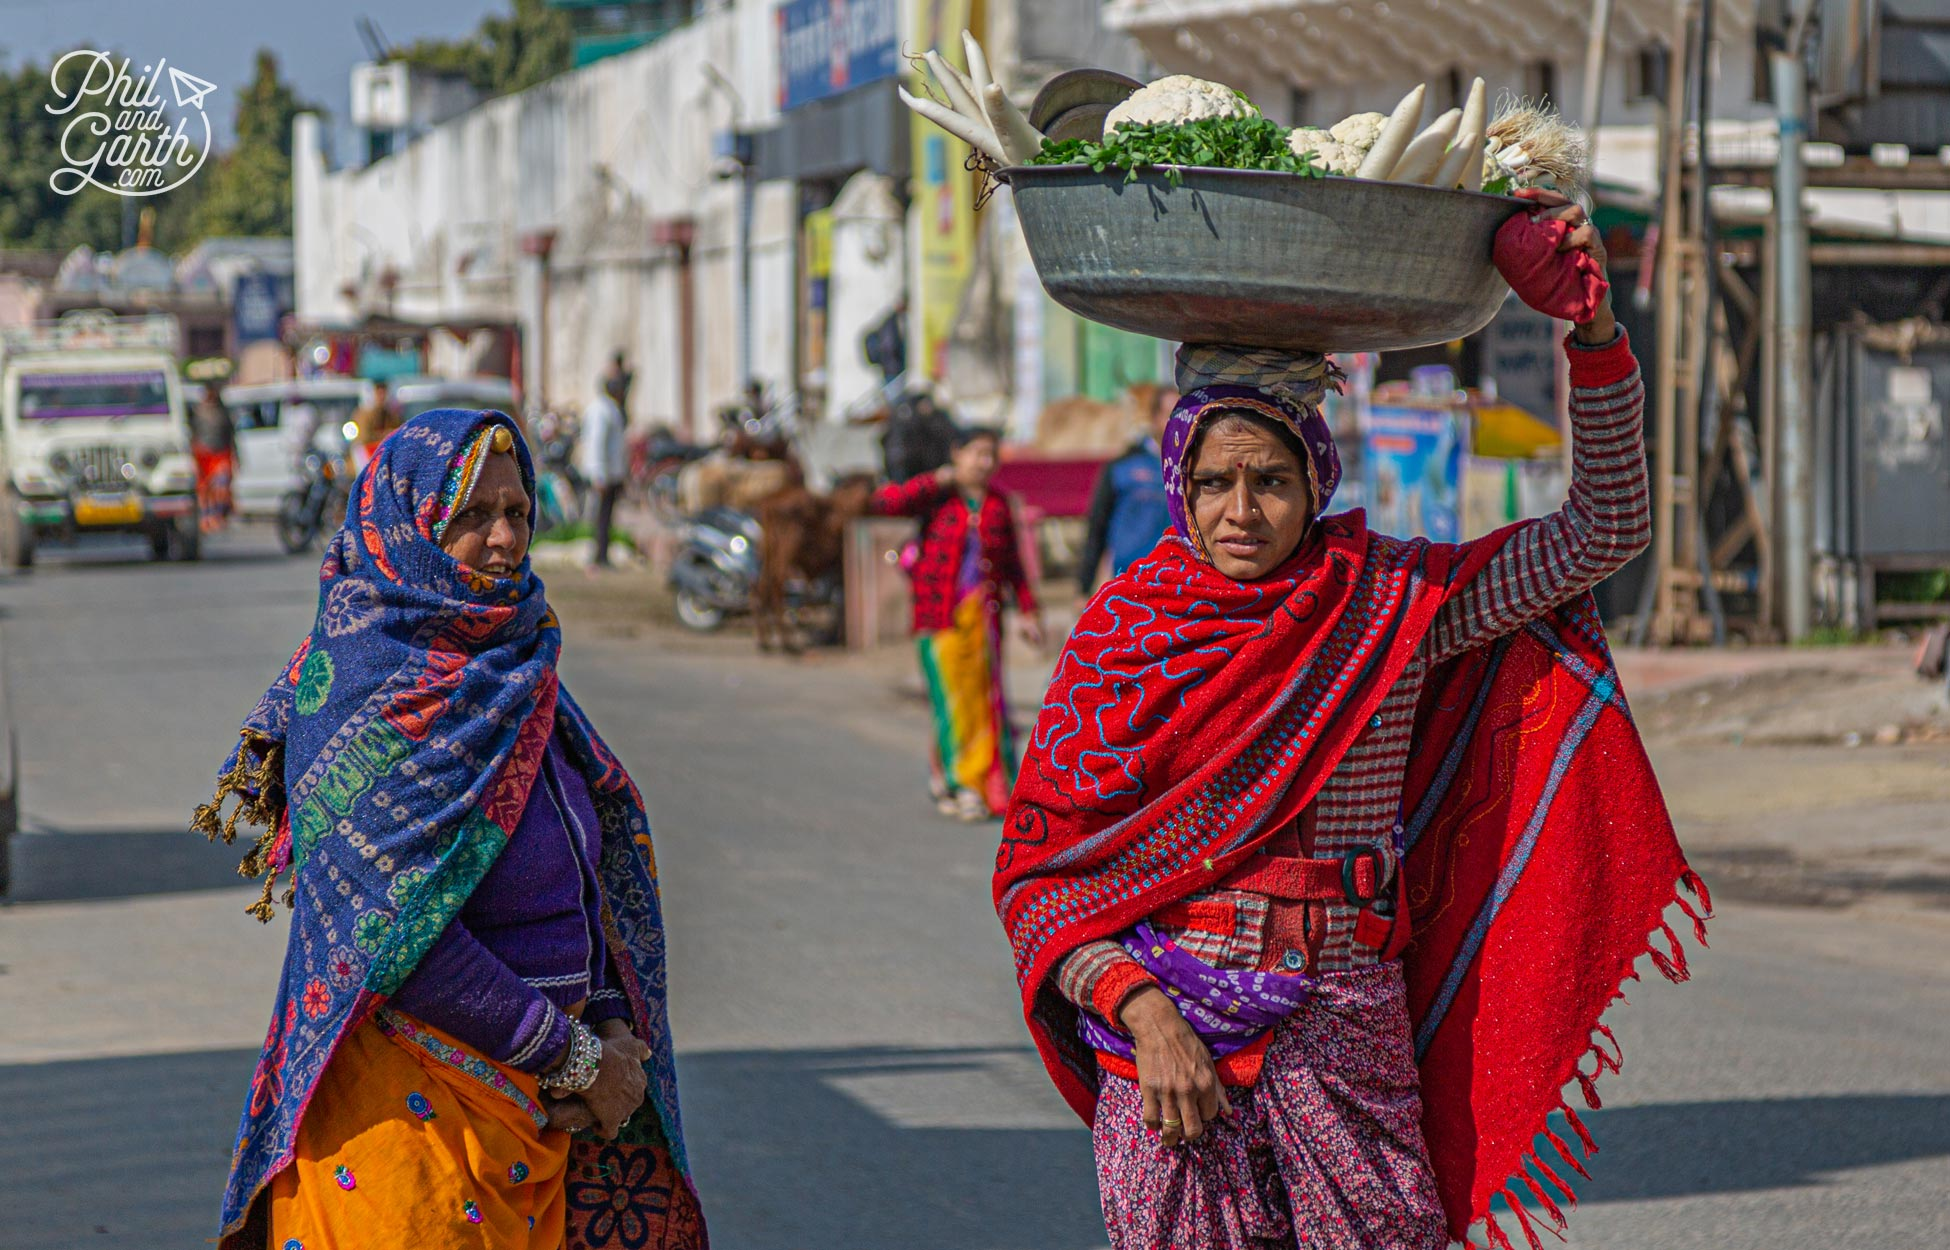 A couple of ladies wrapped up warm in Pushkar